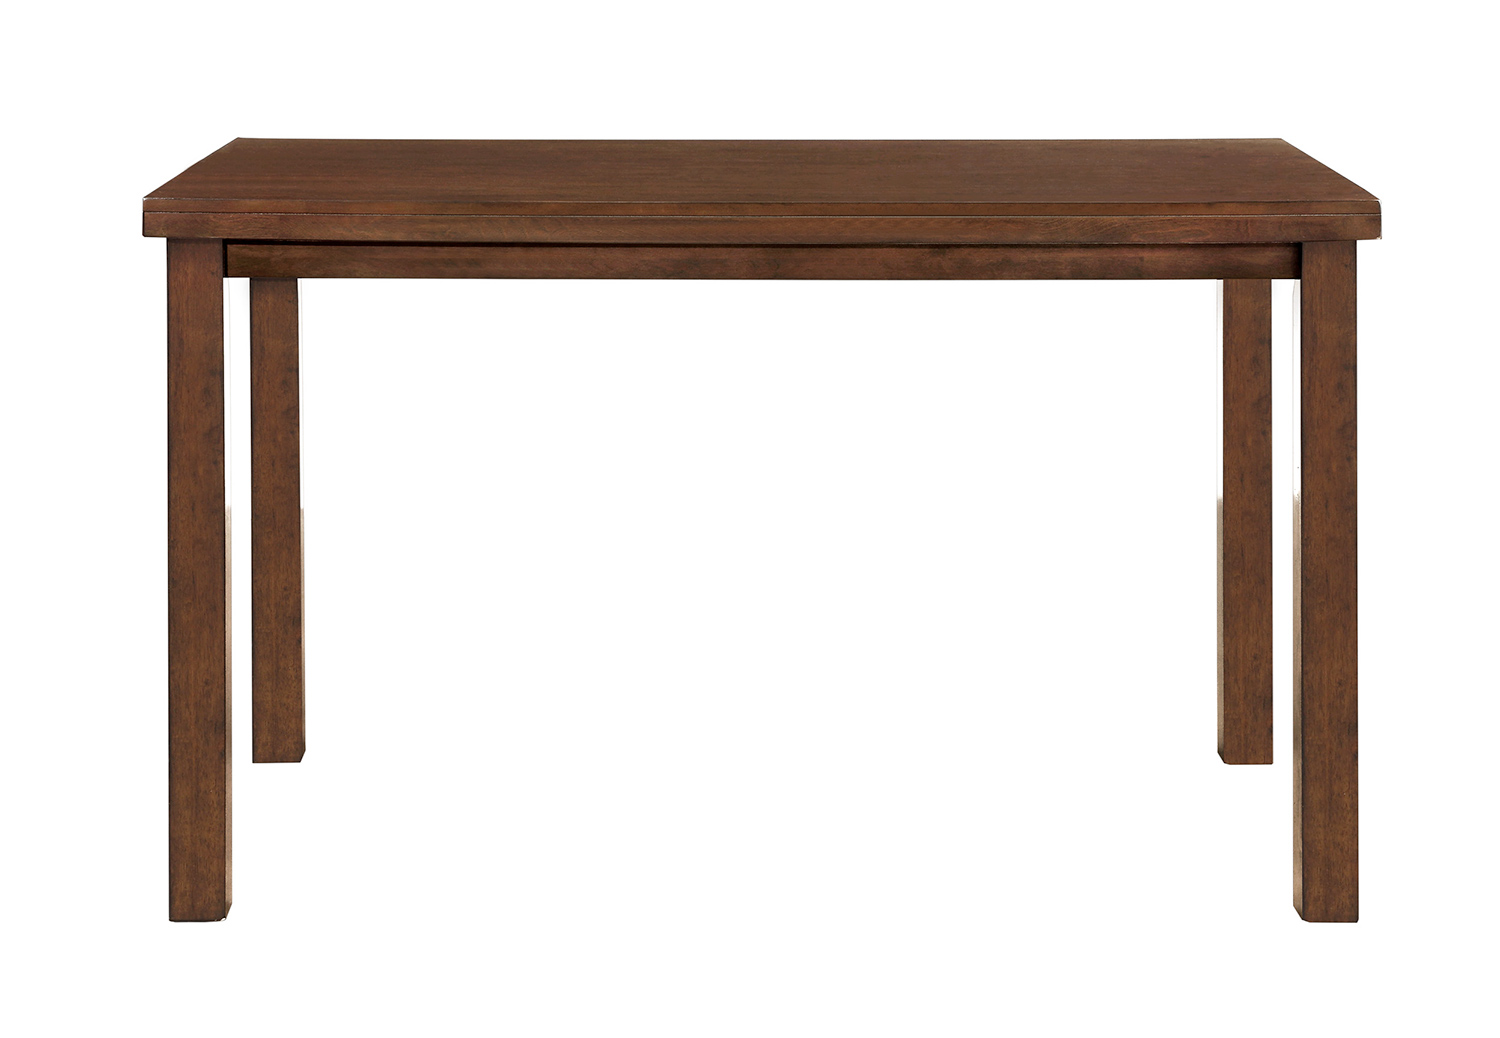 Homelegance Brindle Counter Height Dining Table - Brown